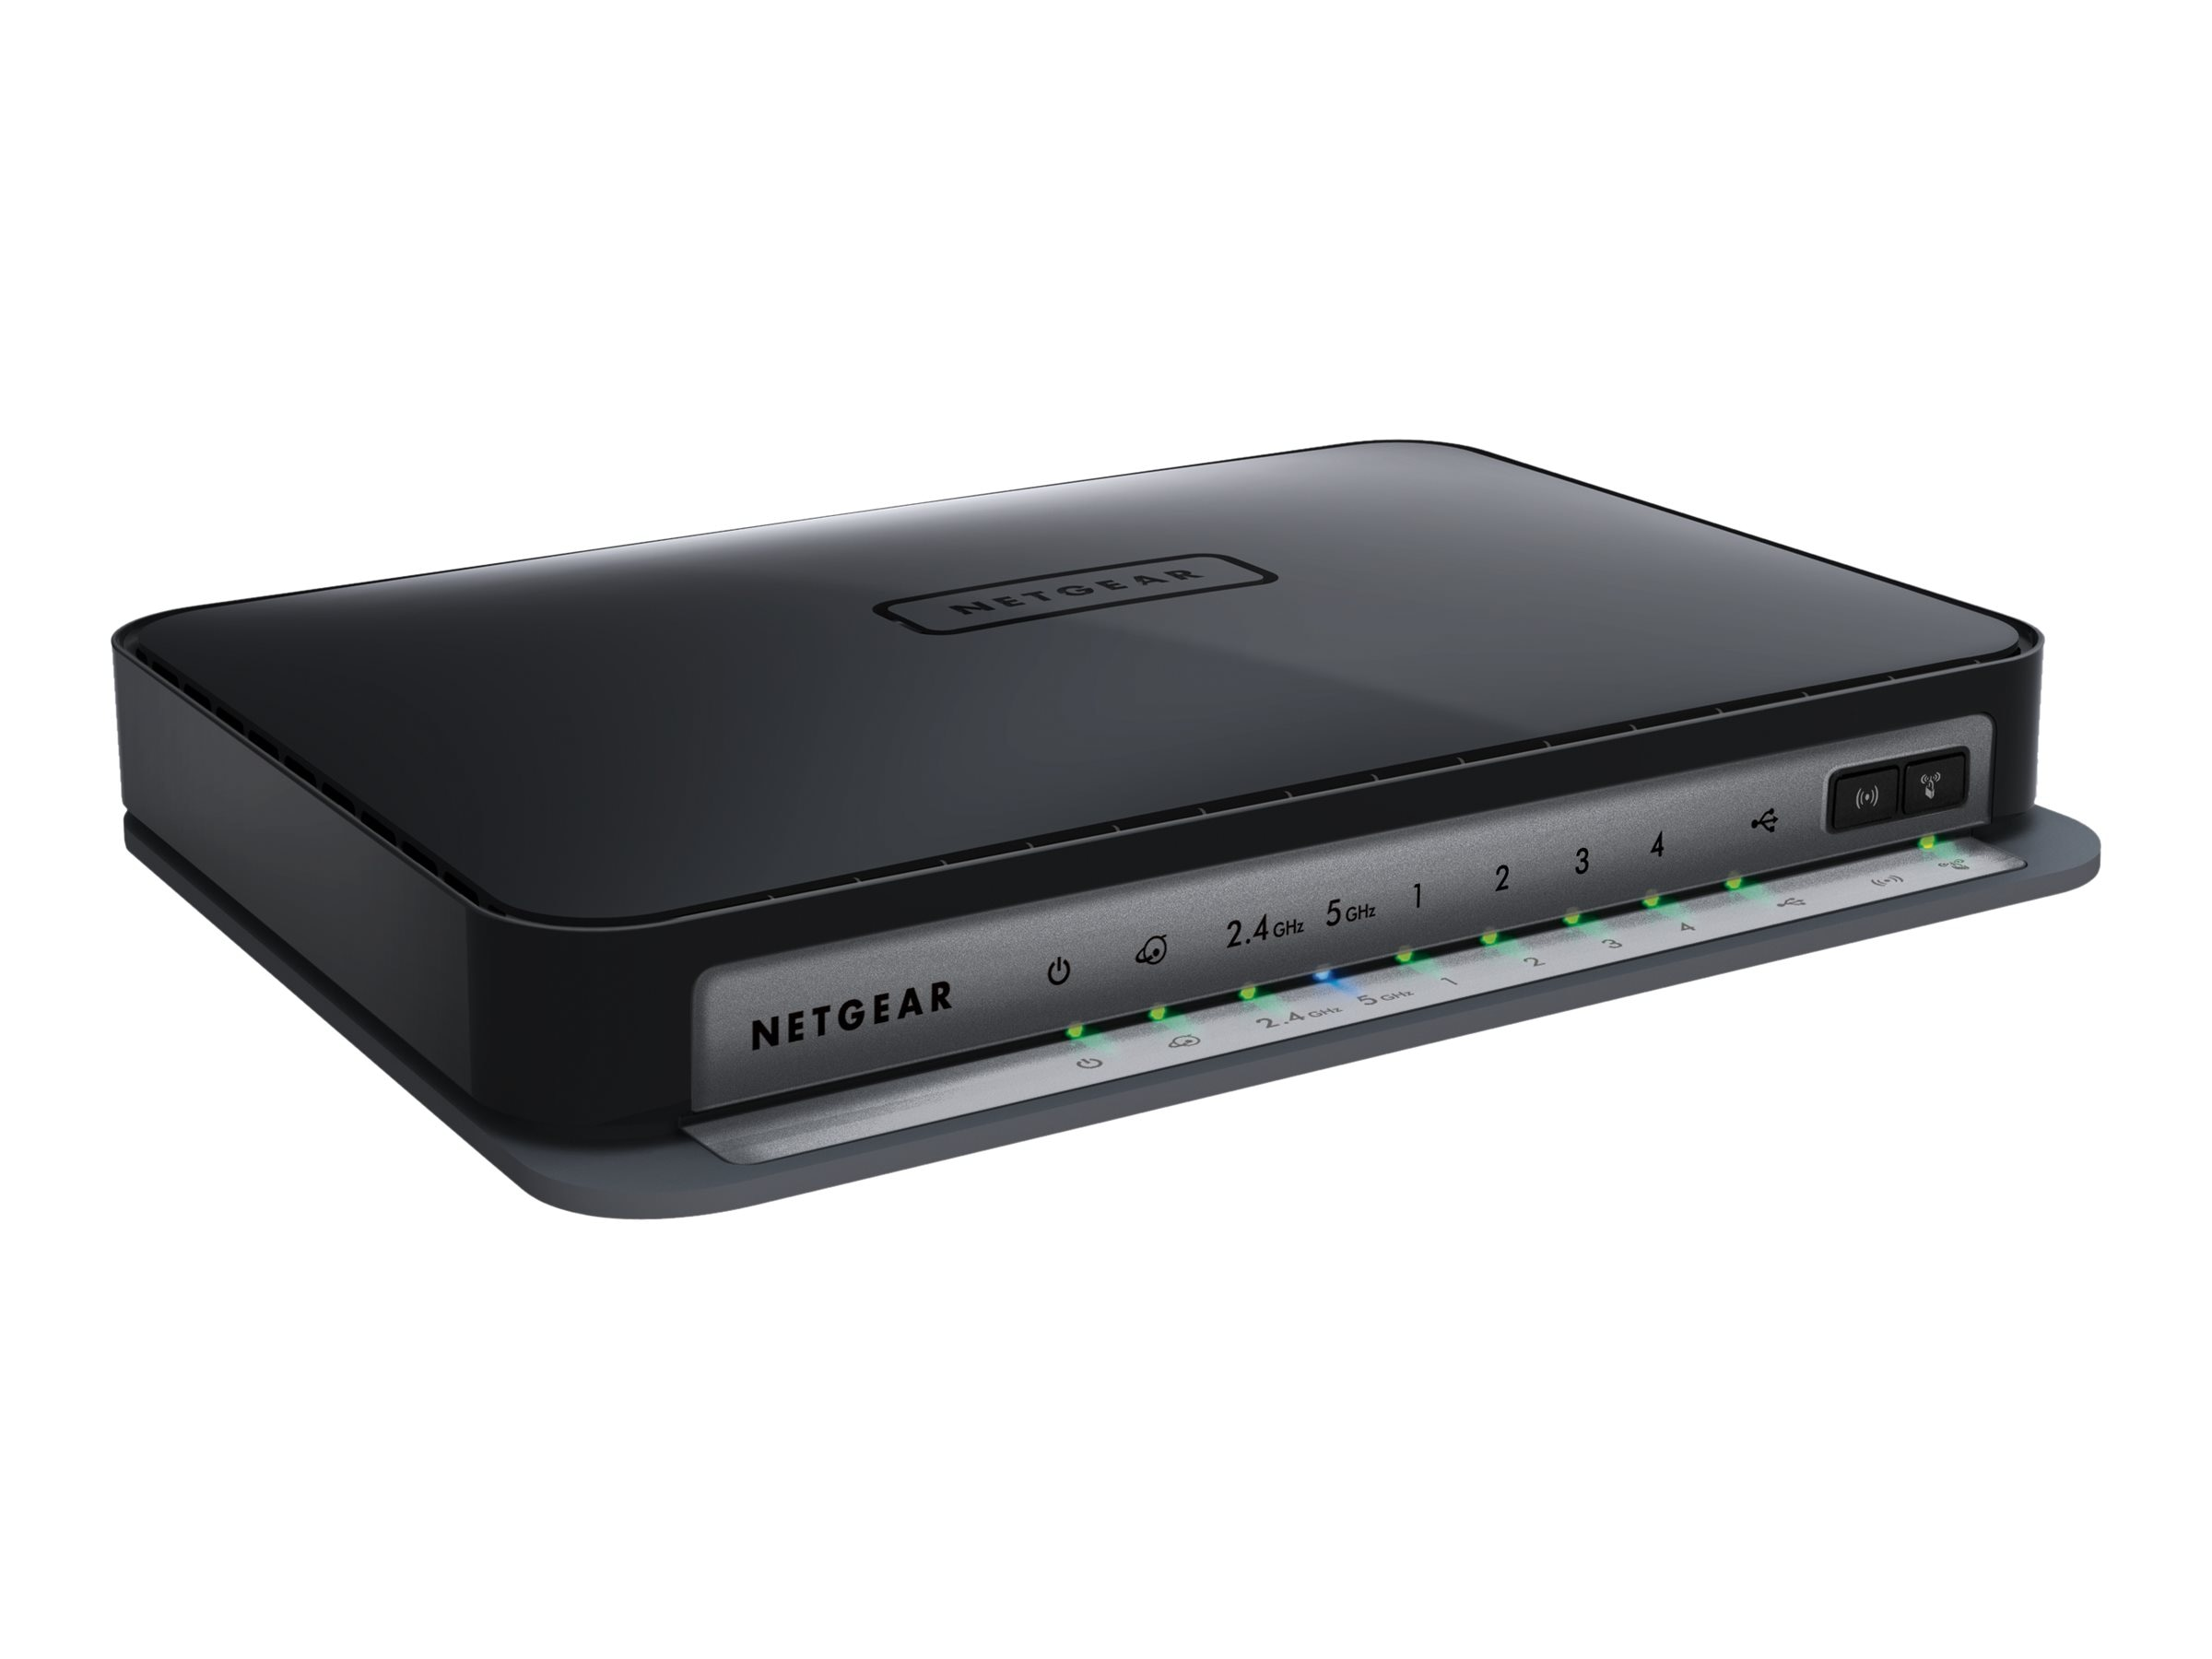 Netgear N750 Dual-Band Wireless-N Gigabit Router with 4-Port Ethernet Switch, WNDR4300-100NAS, 14711111, Wireless Routers